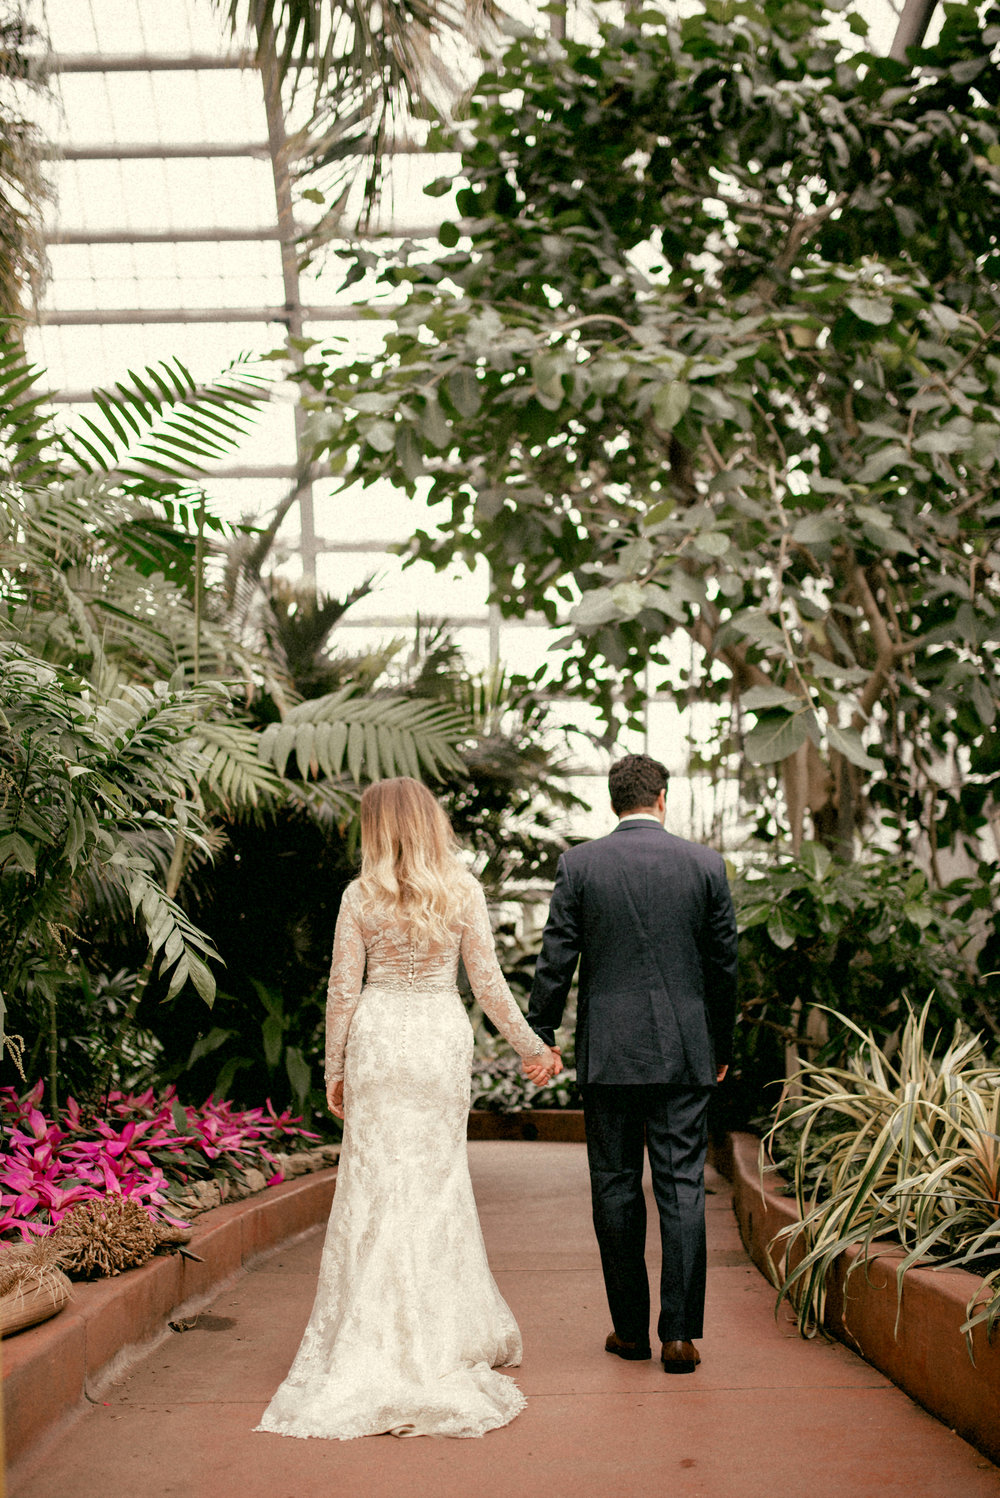 garfield park conservatory chicago wedding 07